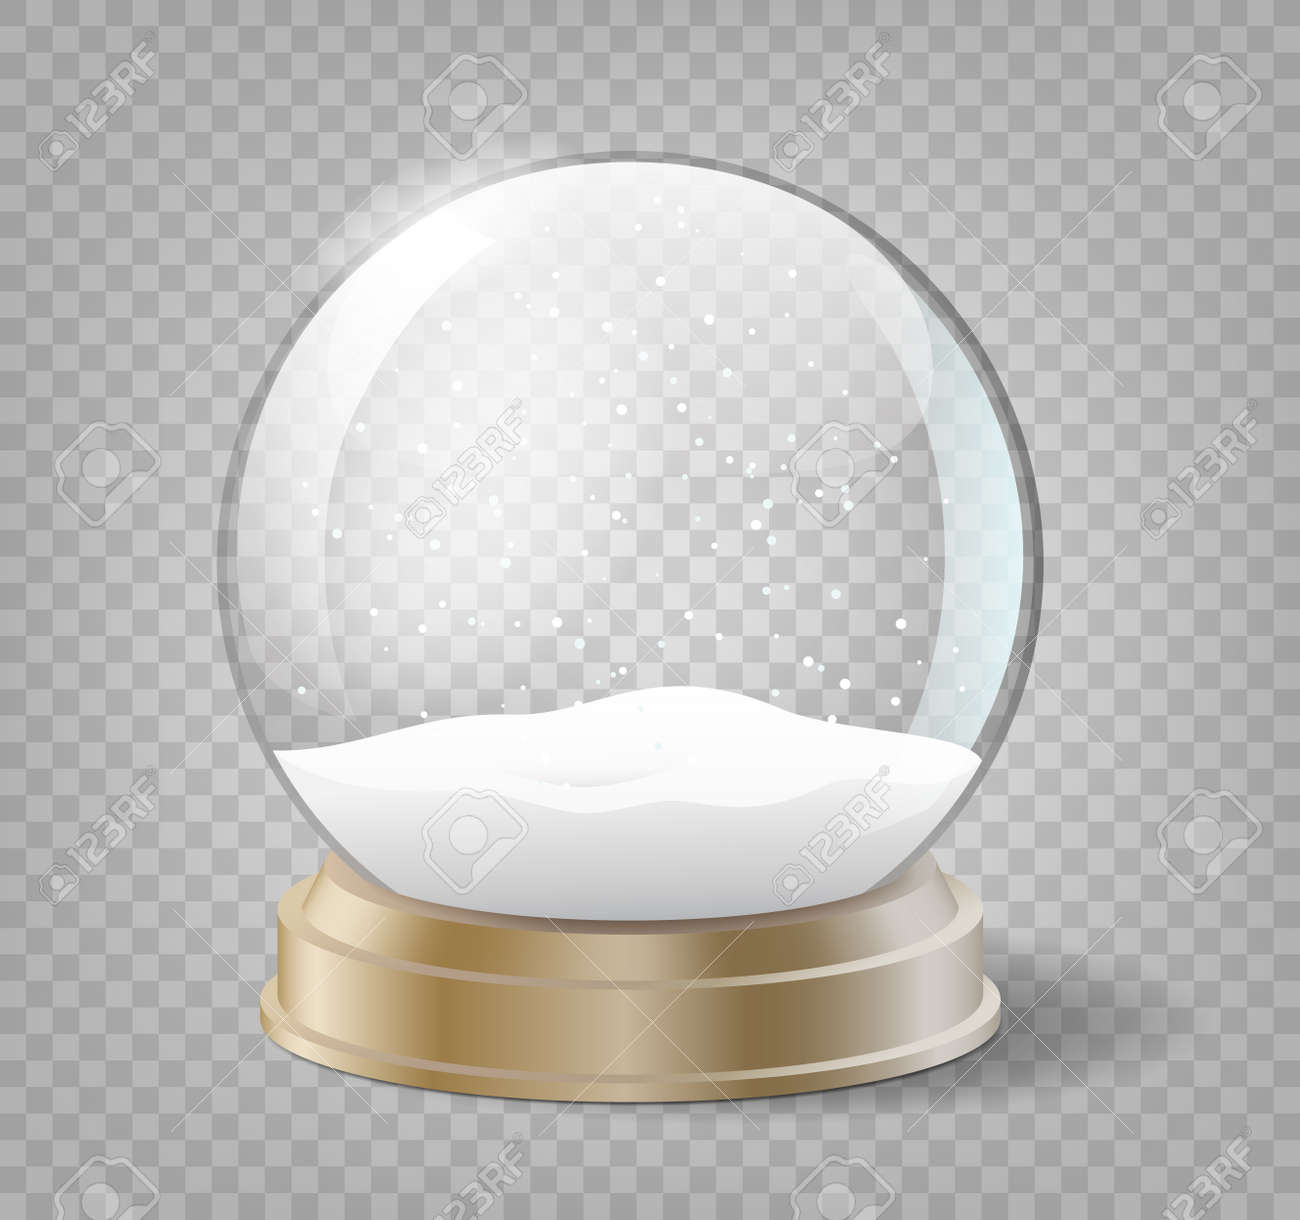 Christmas snow globe on transparent background. Glass sphere with snow for winter holiday events - 157432554